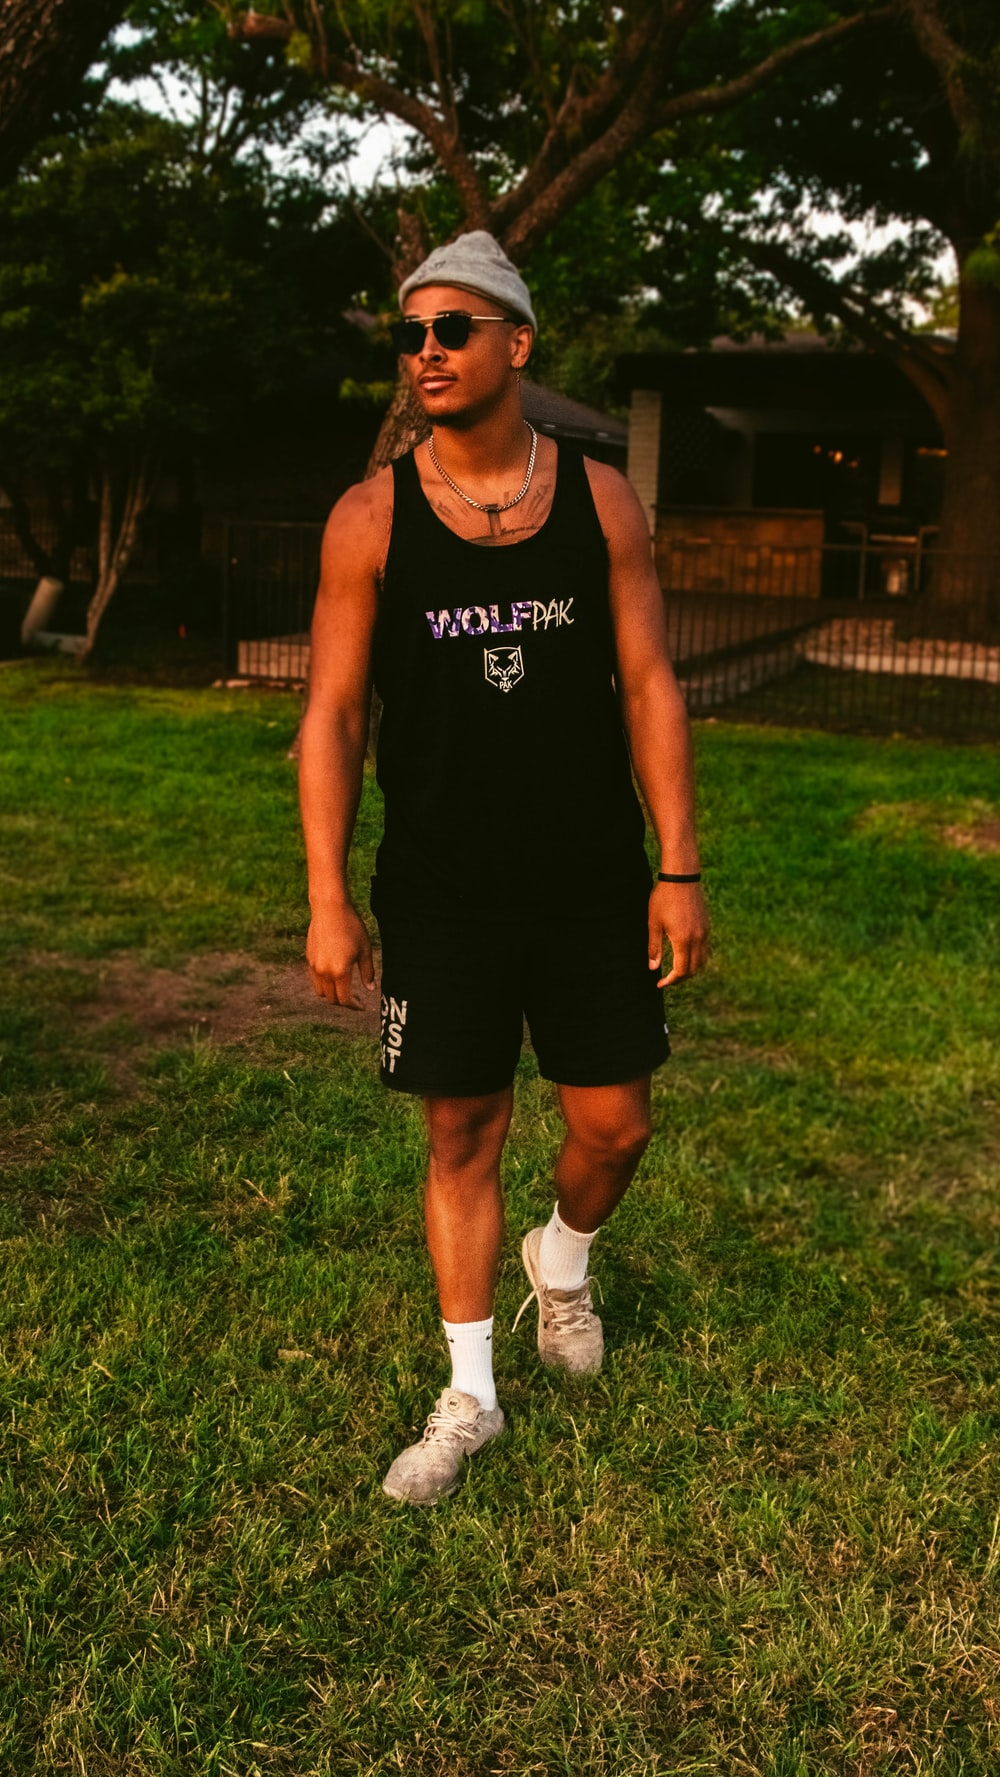 man in black tank top and shorts standing on green grass field